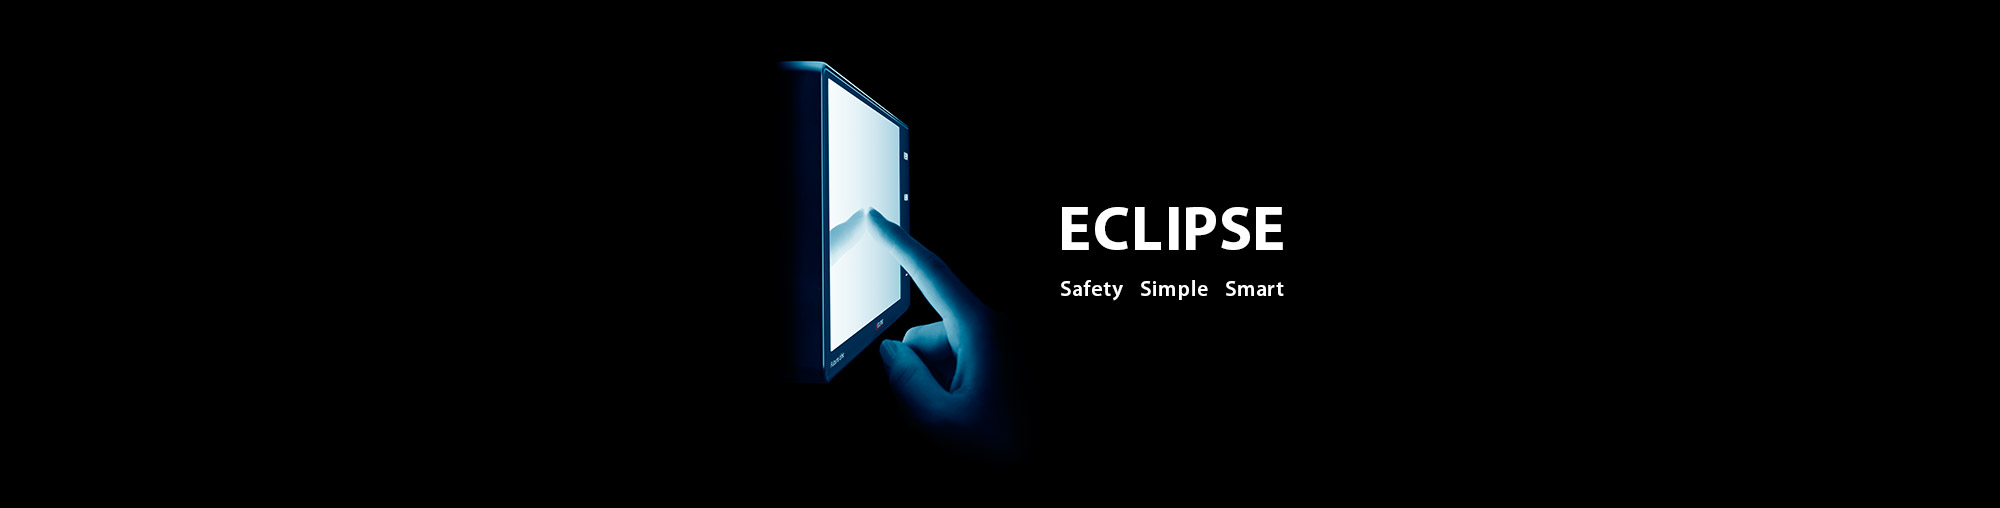 ECLIPSE Safety Simple Smart